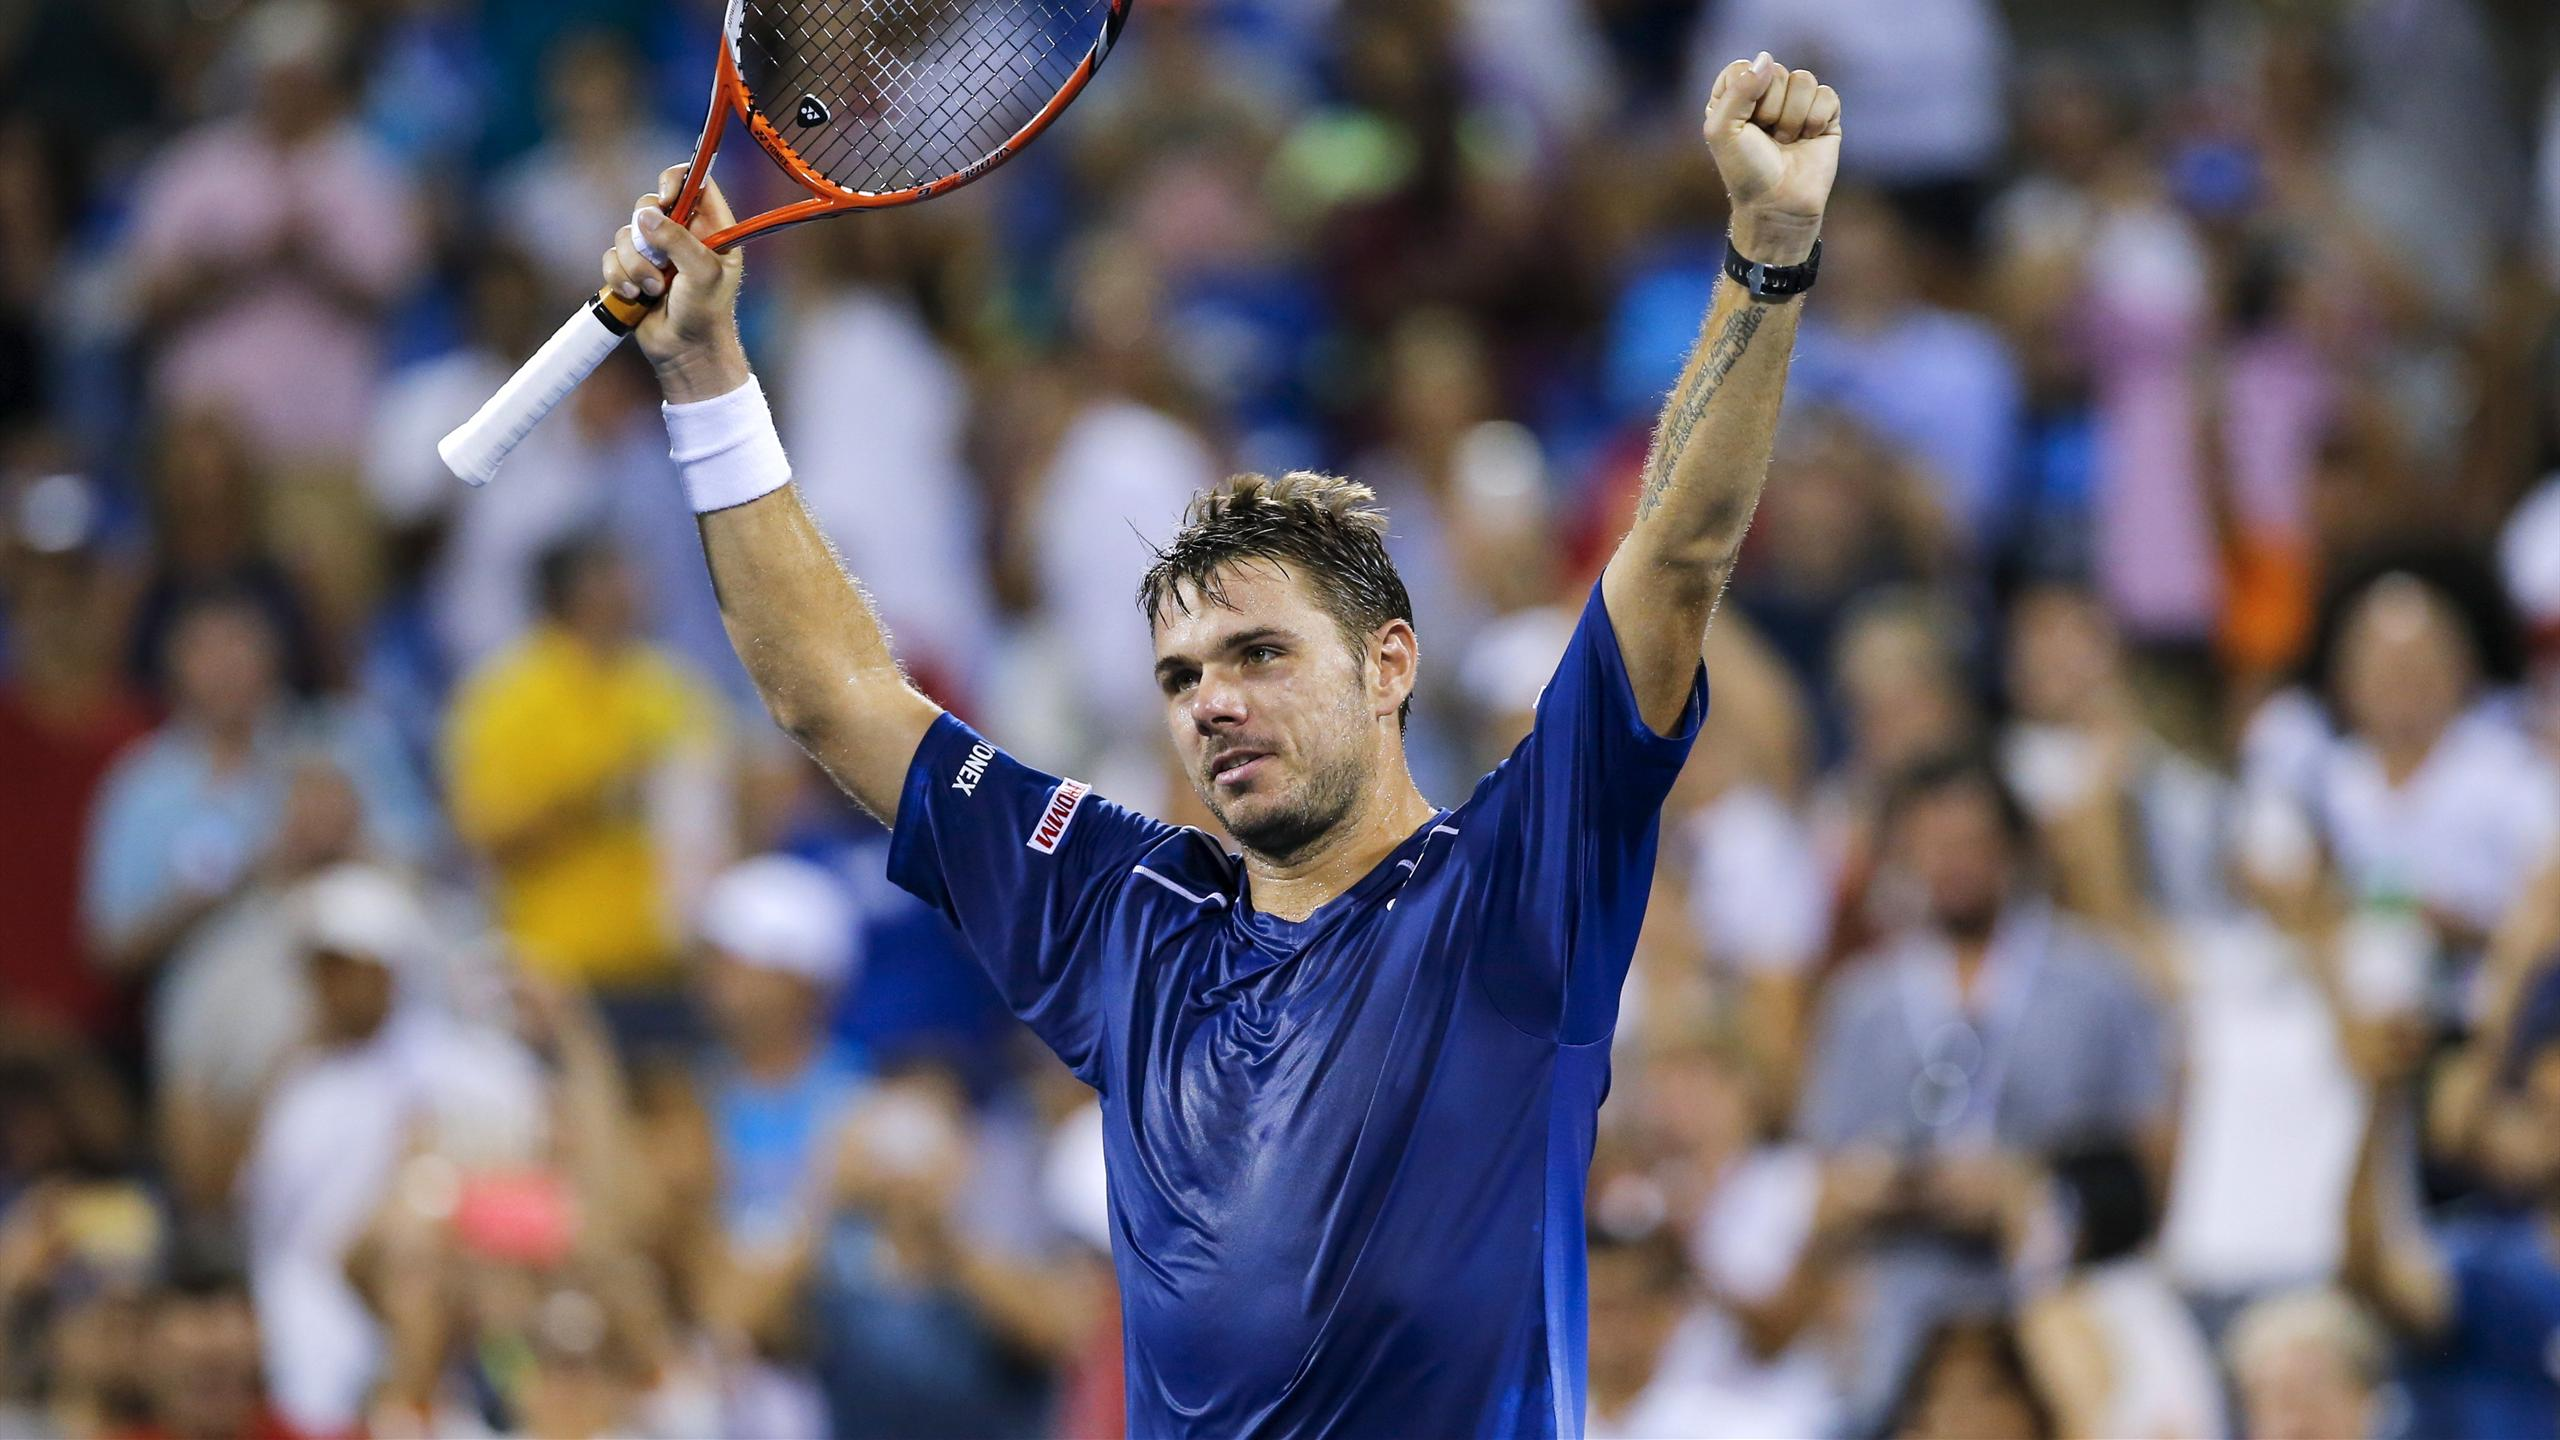 Stan Wawrinka of Switzerland celebrates his victory over Kevin Anderson of South Africa during their quarterfinals match at the U.S. Open Championships tennis tournament in New York